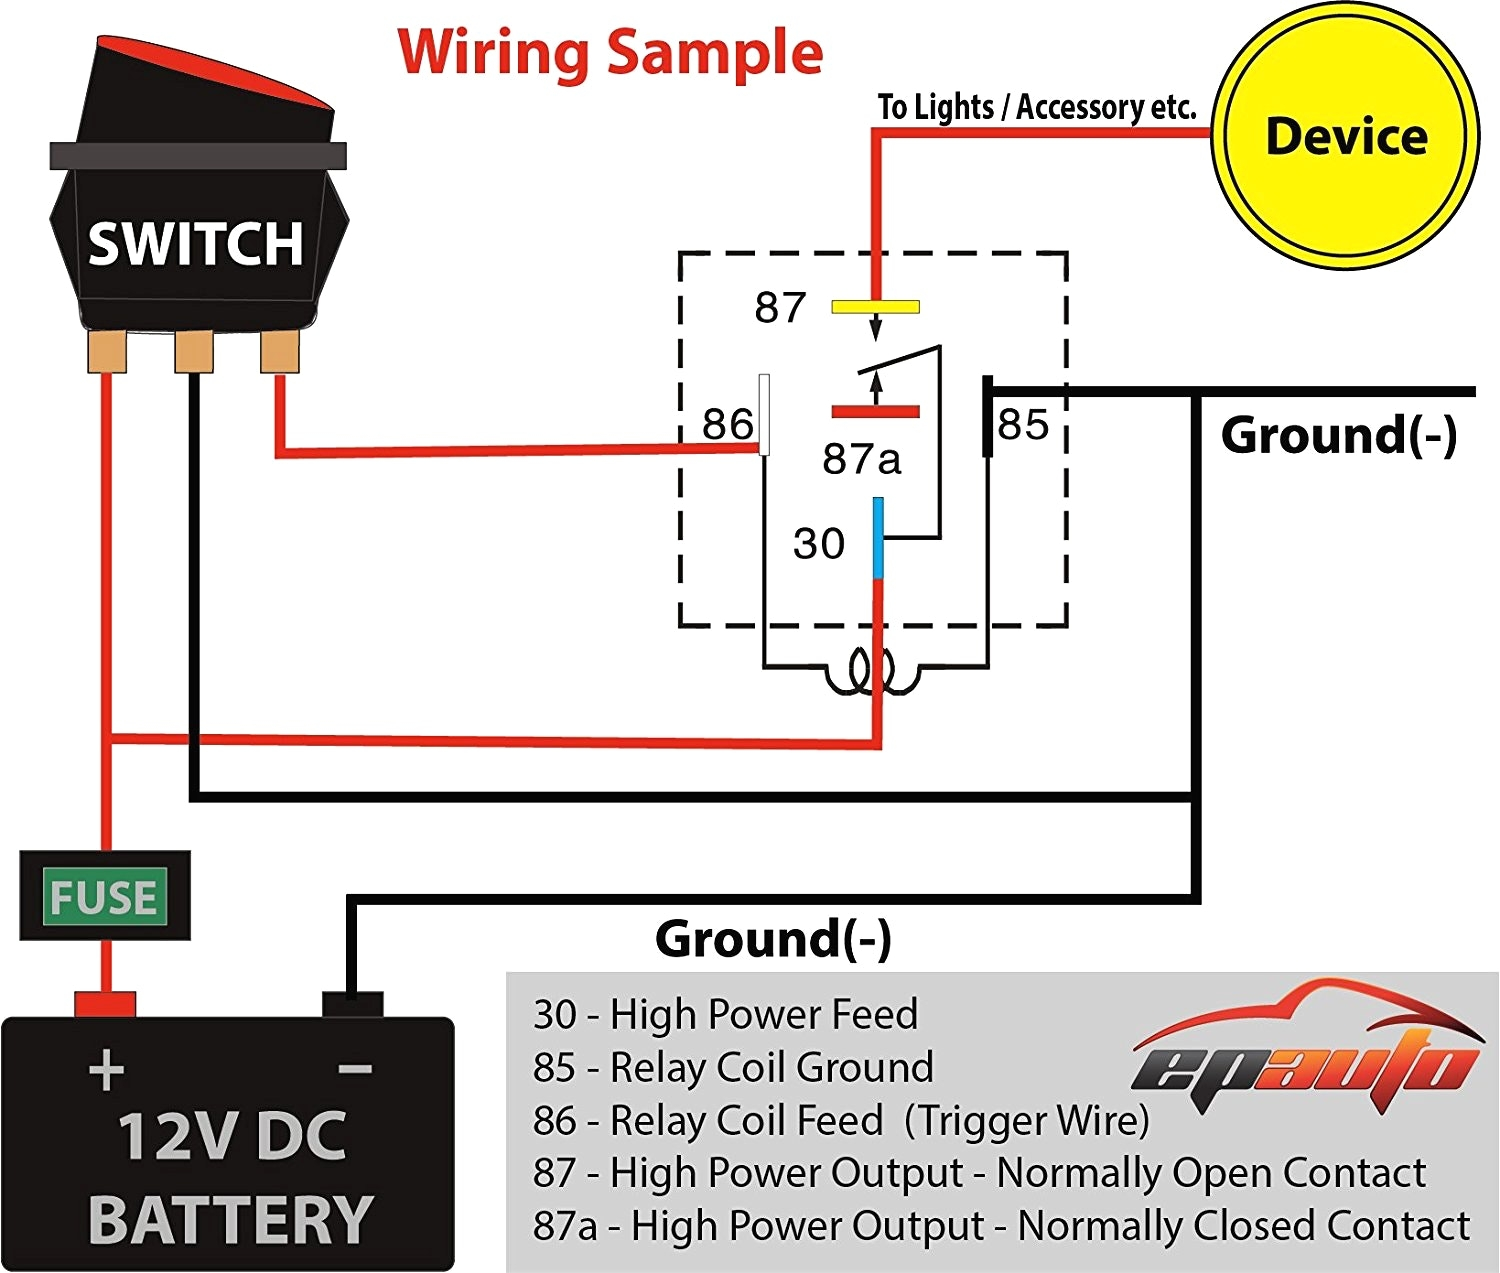 120 volt hoist wiring diagram 120 volt schematic wiring diagram 120 volt relay wiring diagram | free wiring diagram #7